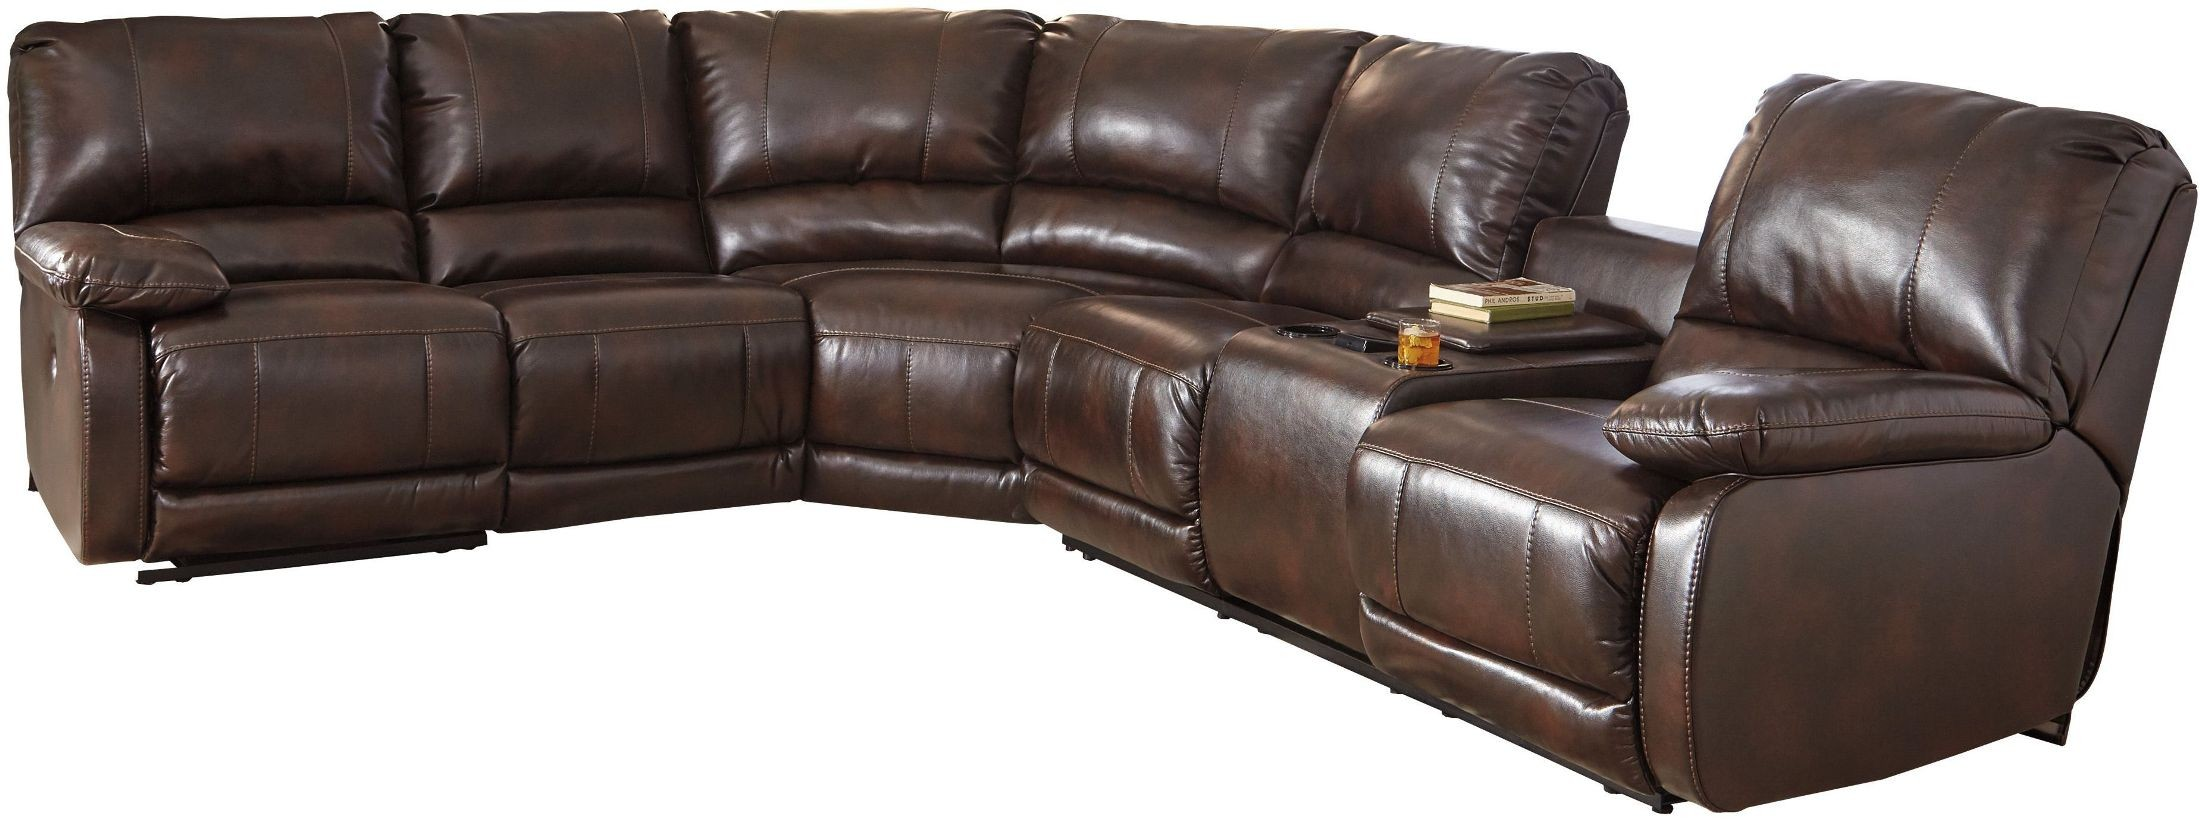 Hallettsville Saddle Power Reclining Sectional From Ashley